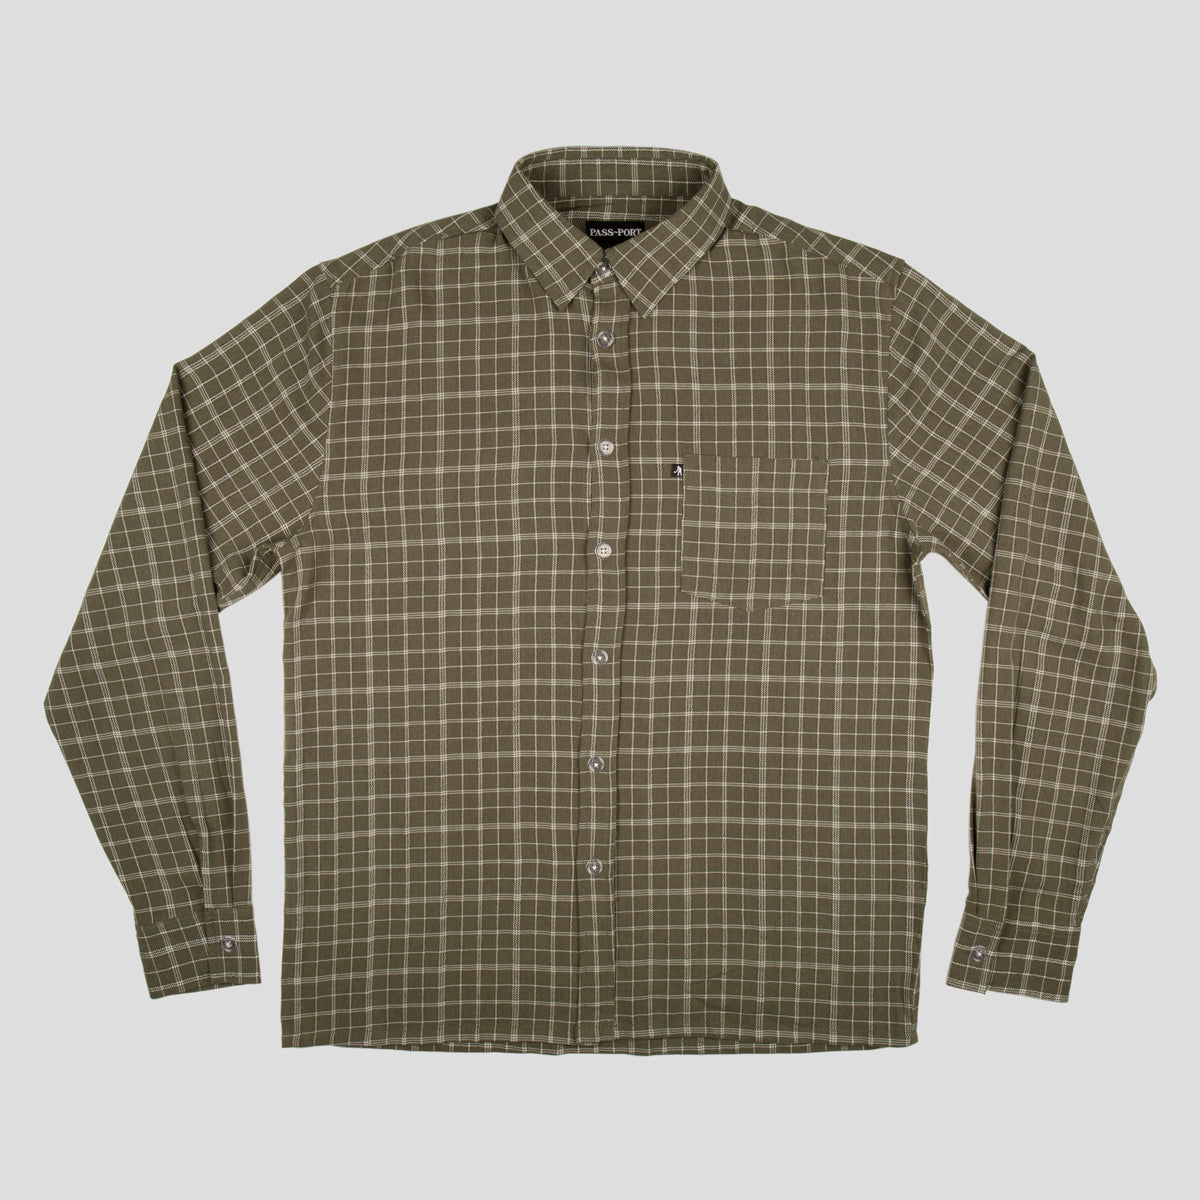 "PASS~PORT ""CROSS CHECK"" L/S SHIRT GREEN"